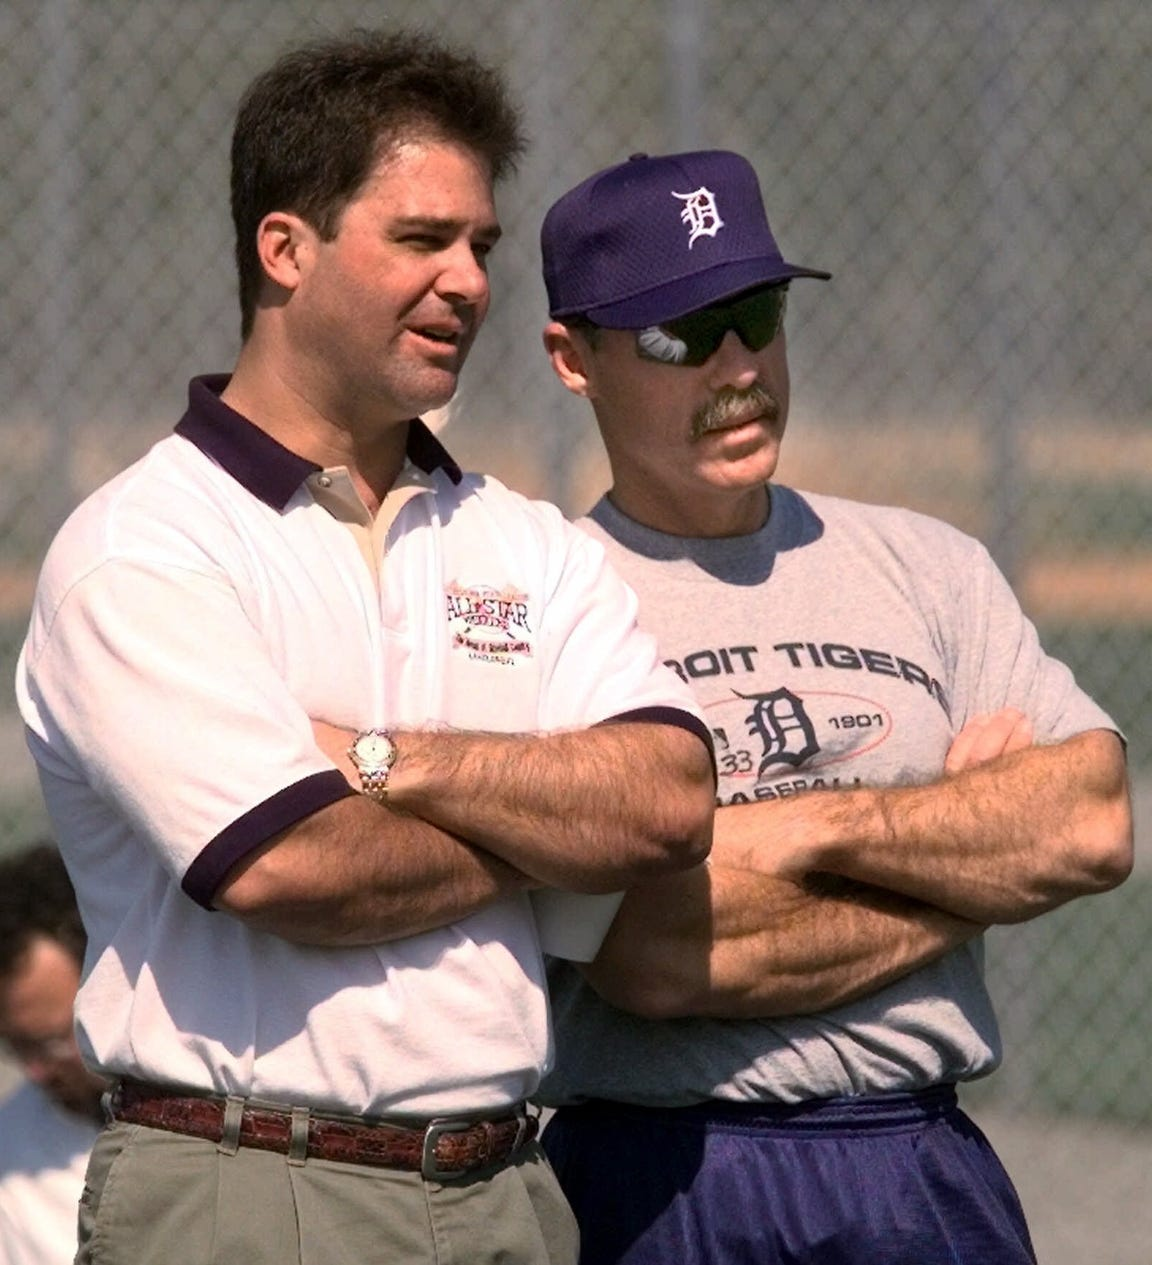 Tigers general manager Randy Smith chats with manager Phil Garner as they watch minor league pitchers throw in February 2000, in Lakeland, Fla.